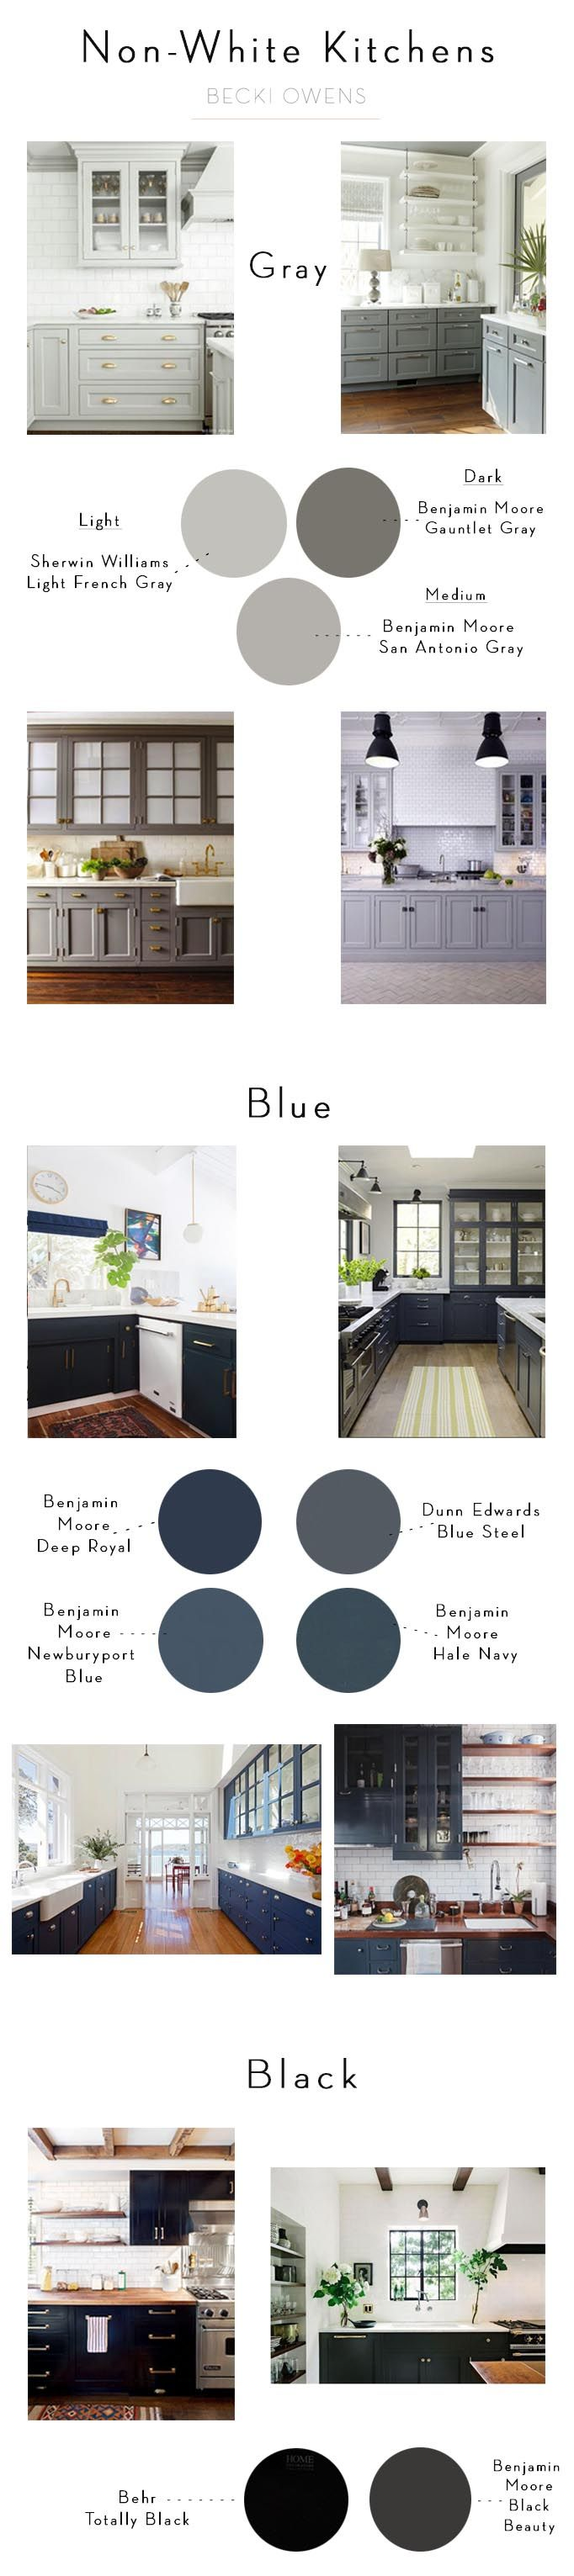 10 DIY Easy And Little Project For Your Kitchen 9 | Corner, Kitchens Gray Kitchen Cabinet Painting Ideas Diy on diy chalk paint table, diy spray painting kitchen cabinets, diy kitchen cabinets on a budget, kitchen under cabinet storage ideas, diy closet painting ideas, kitchen reface ideas, diy remodeled kitchen, diy ceramic painting ideas, diy kitchen furniture ideas, diy living room painting ideas, diy door painting ideas, diy kitchen countertops backsplash, diy table painting ideas, diy kitchen pantry doors, diy crib painting ideas, white cabinets kitchen remodel ideas, diy shelf painting ideas, painted kitchen cabinet ideas, painting your kitchen cabinets ideas, diy kitchen spice rack,